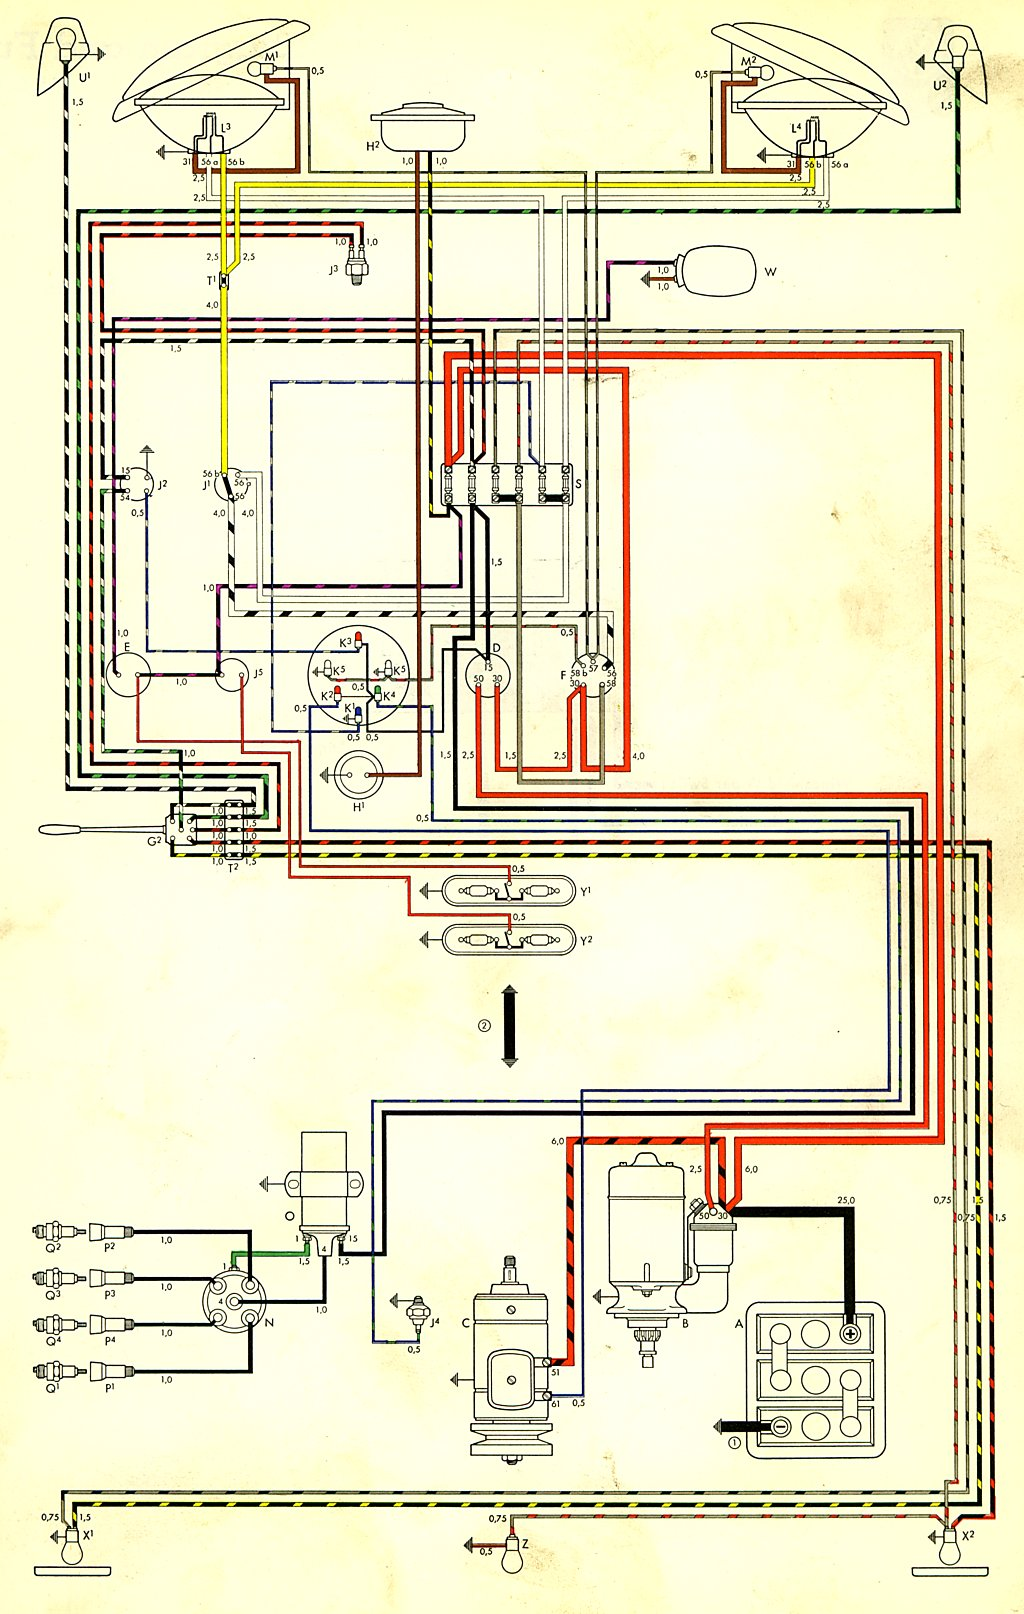 bus_59_USA 1959 bus wiring diagram (usa) thegoldenbug com 1968 vw bug headlight wiring diagram at metegol.co